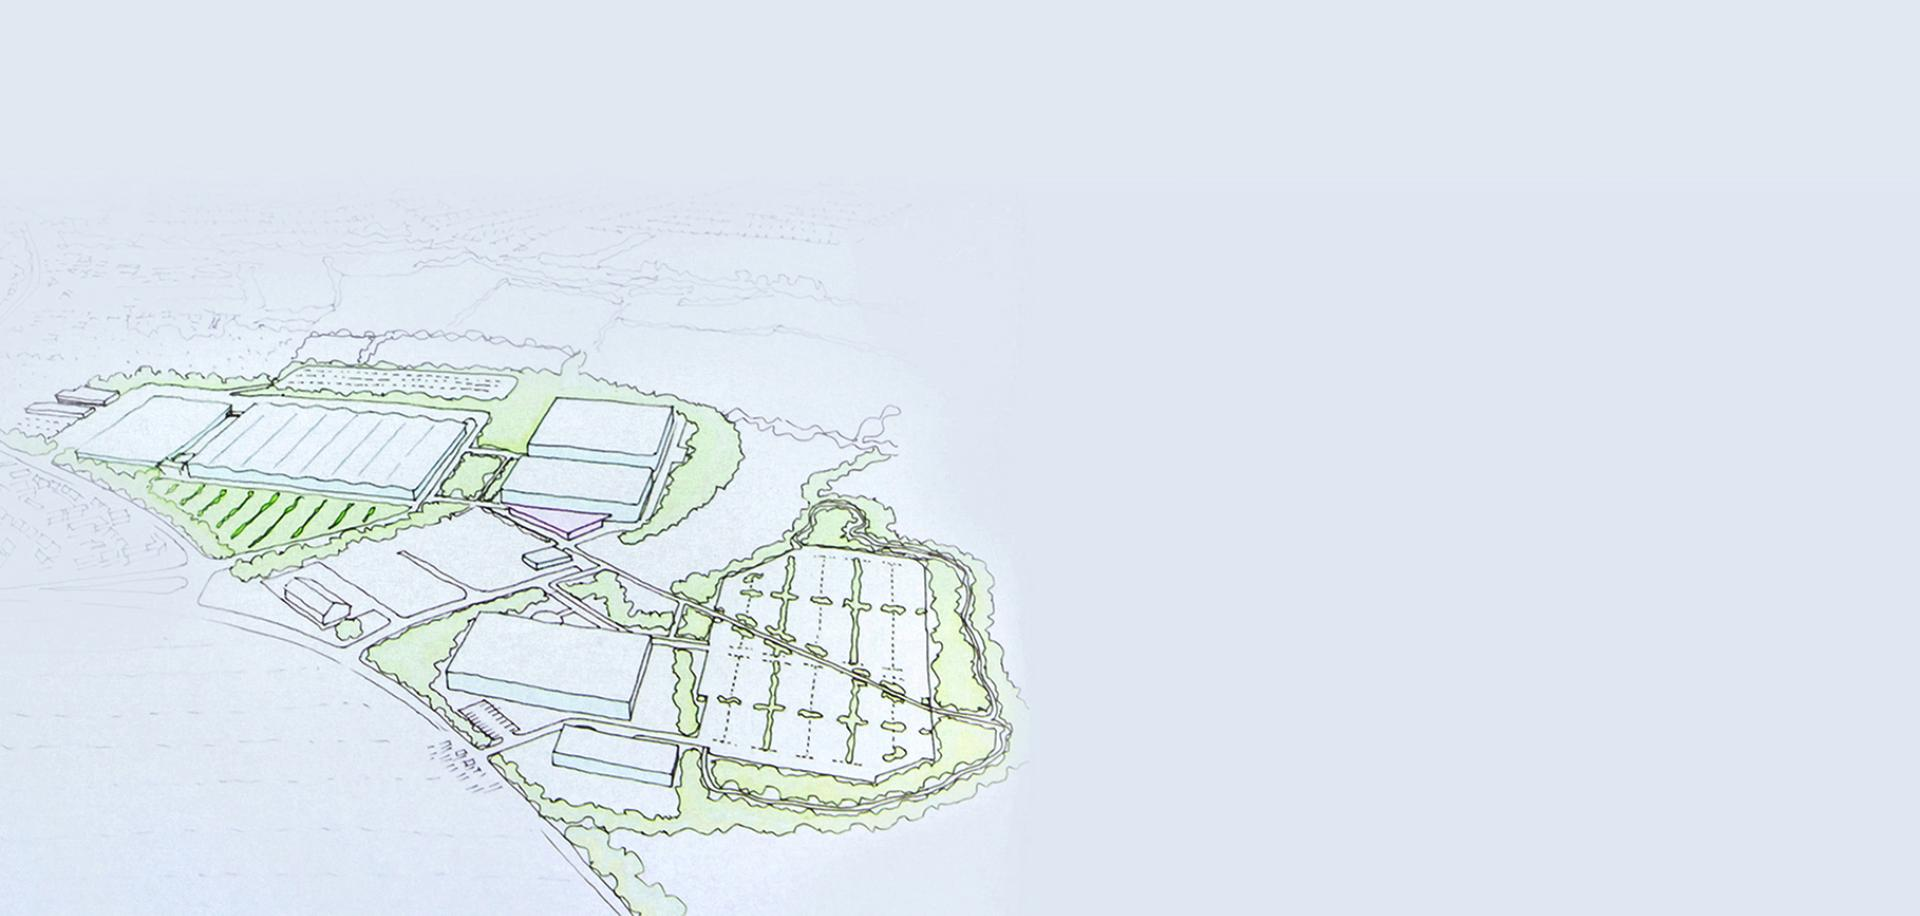 Sketch of Dyson campus